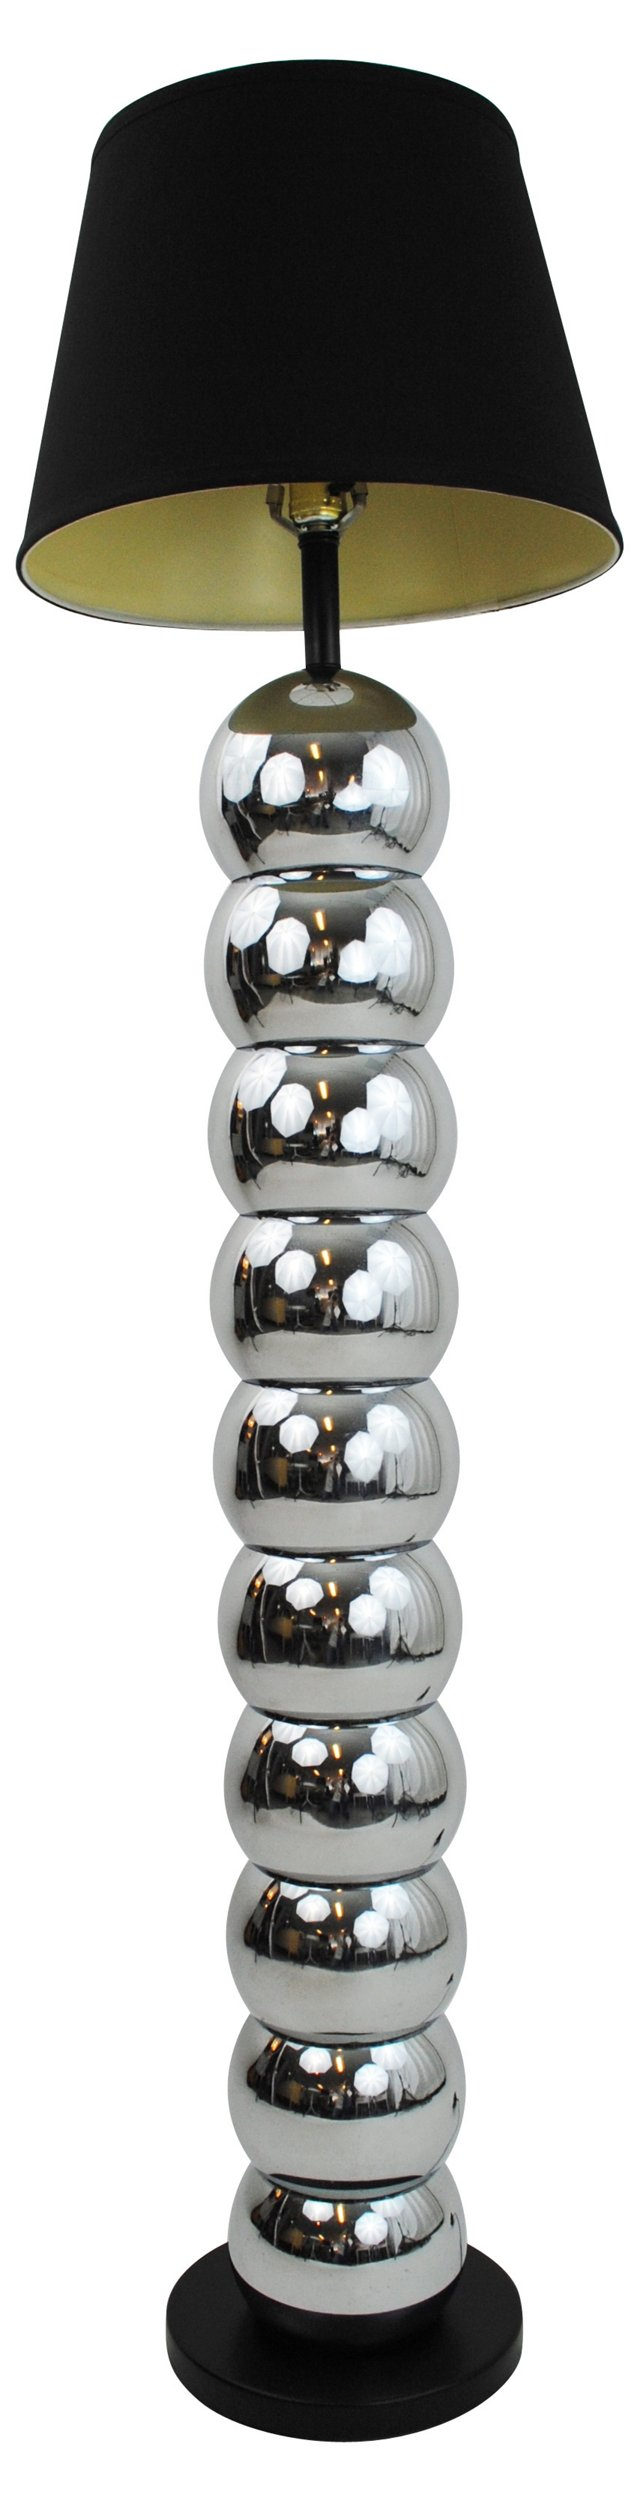 Silver Ball Floor Lamp